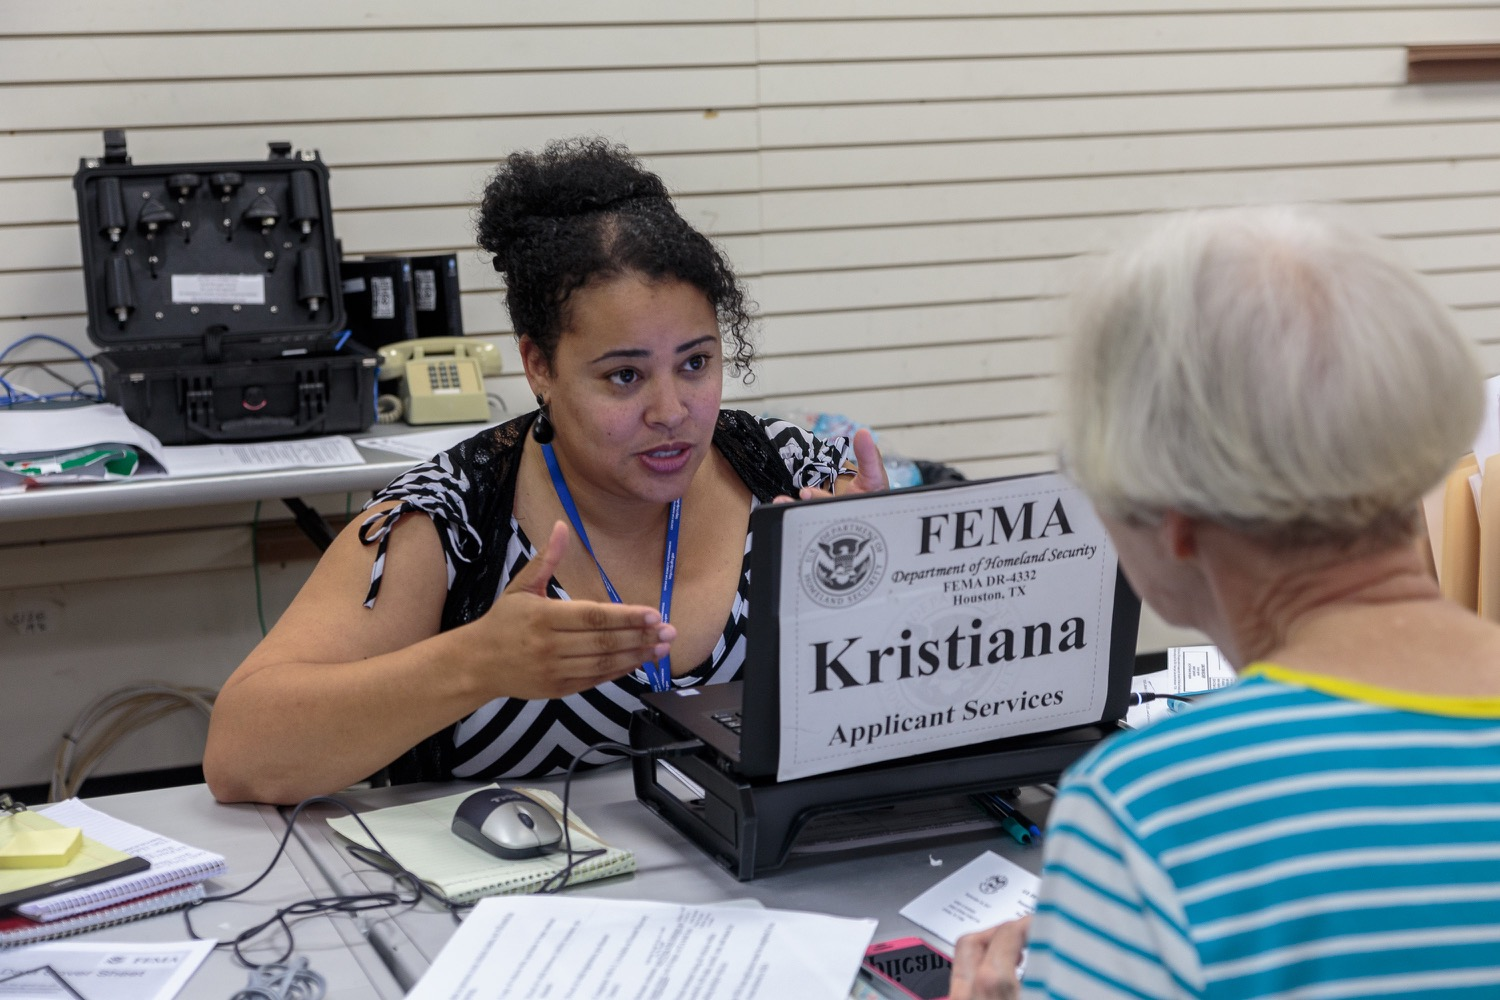 Disaster Recovery Specialist Fema Closing Pearland Area Disaster Recovery Center June 1